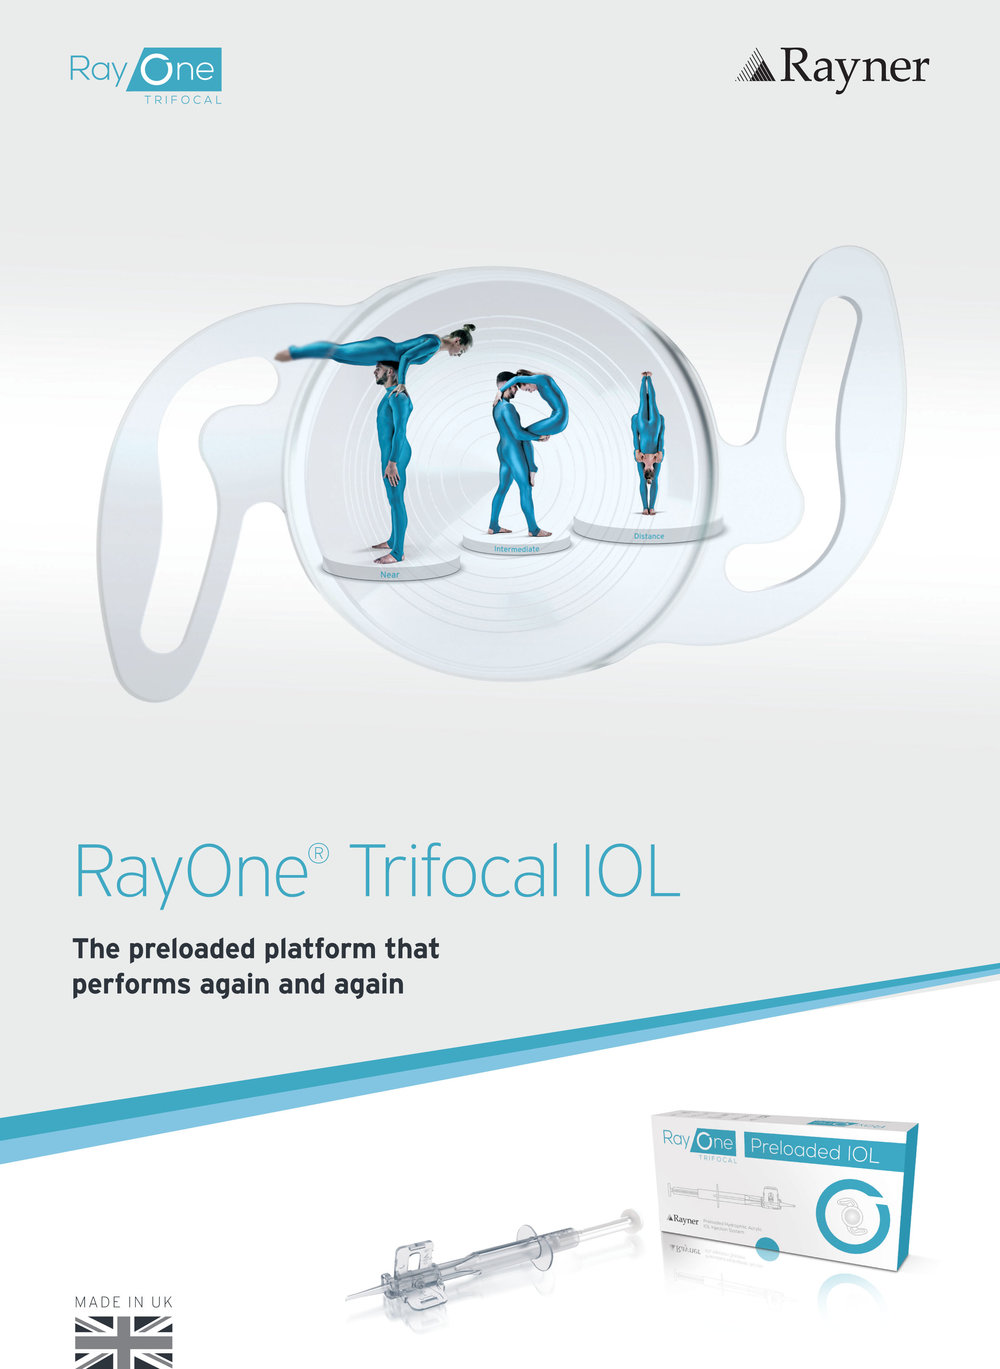 RayOne-TriFocal-Brochure-V4-1.jpg